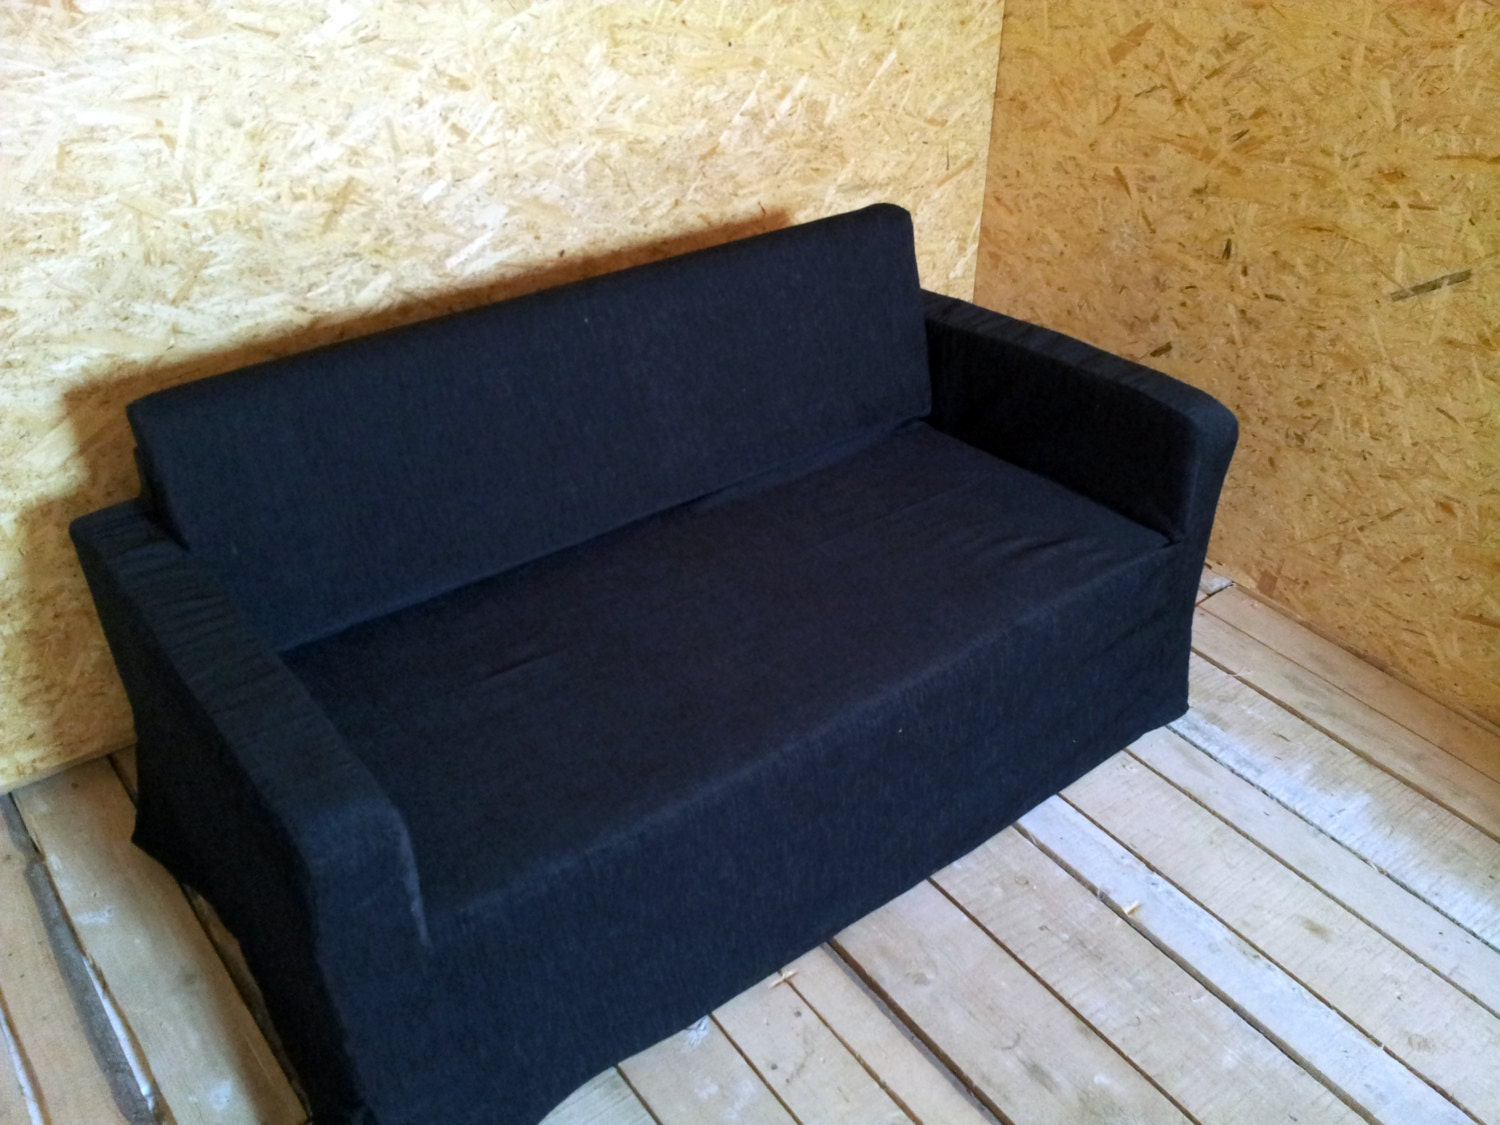 Slipcover for solsta sofa bed from ikea black colour for Solsta sofa bed